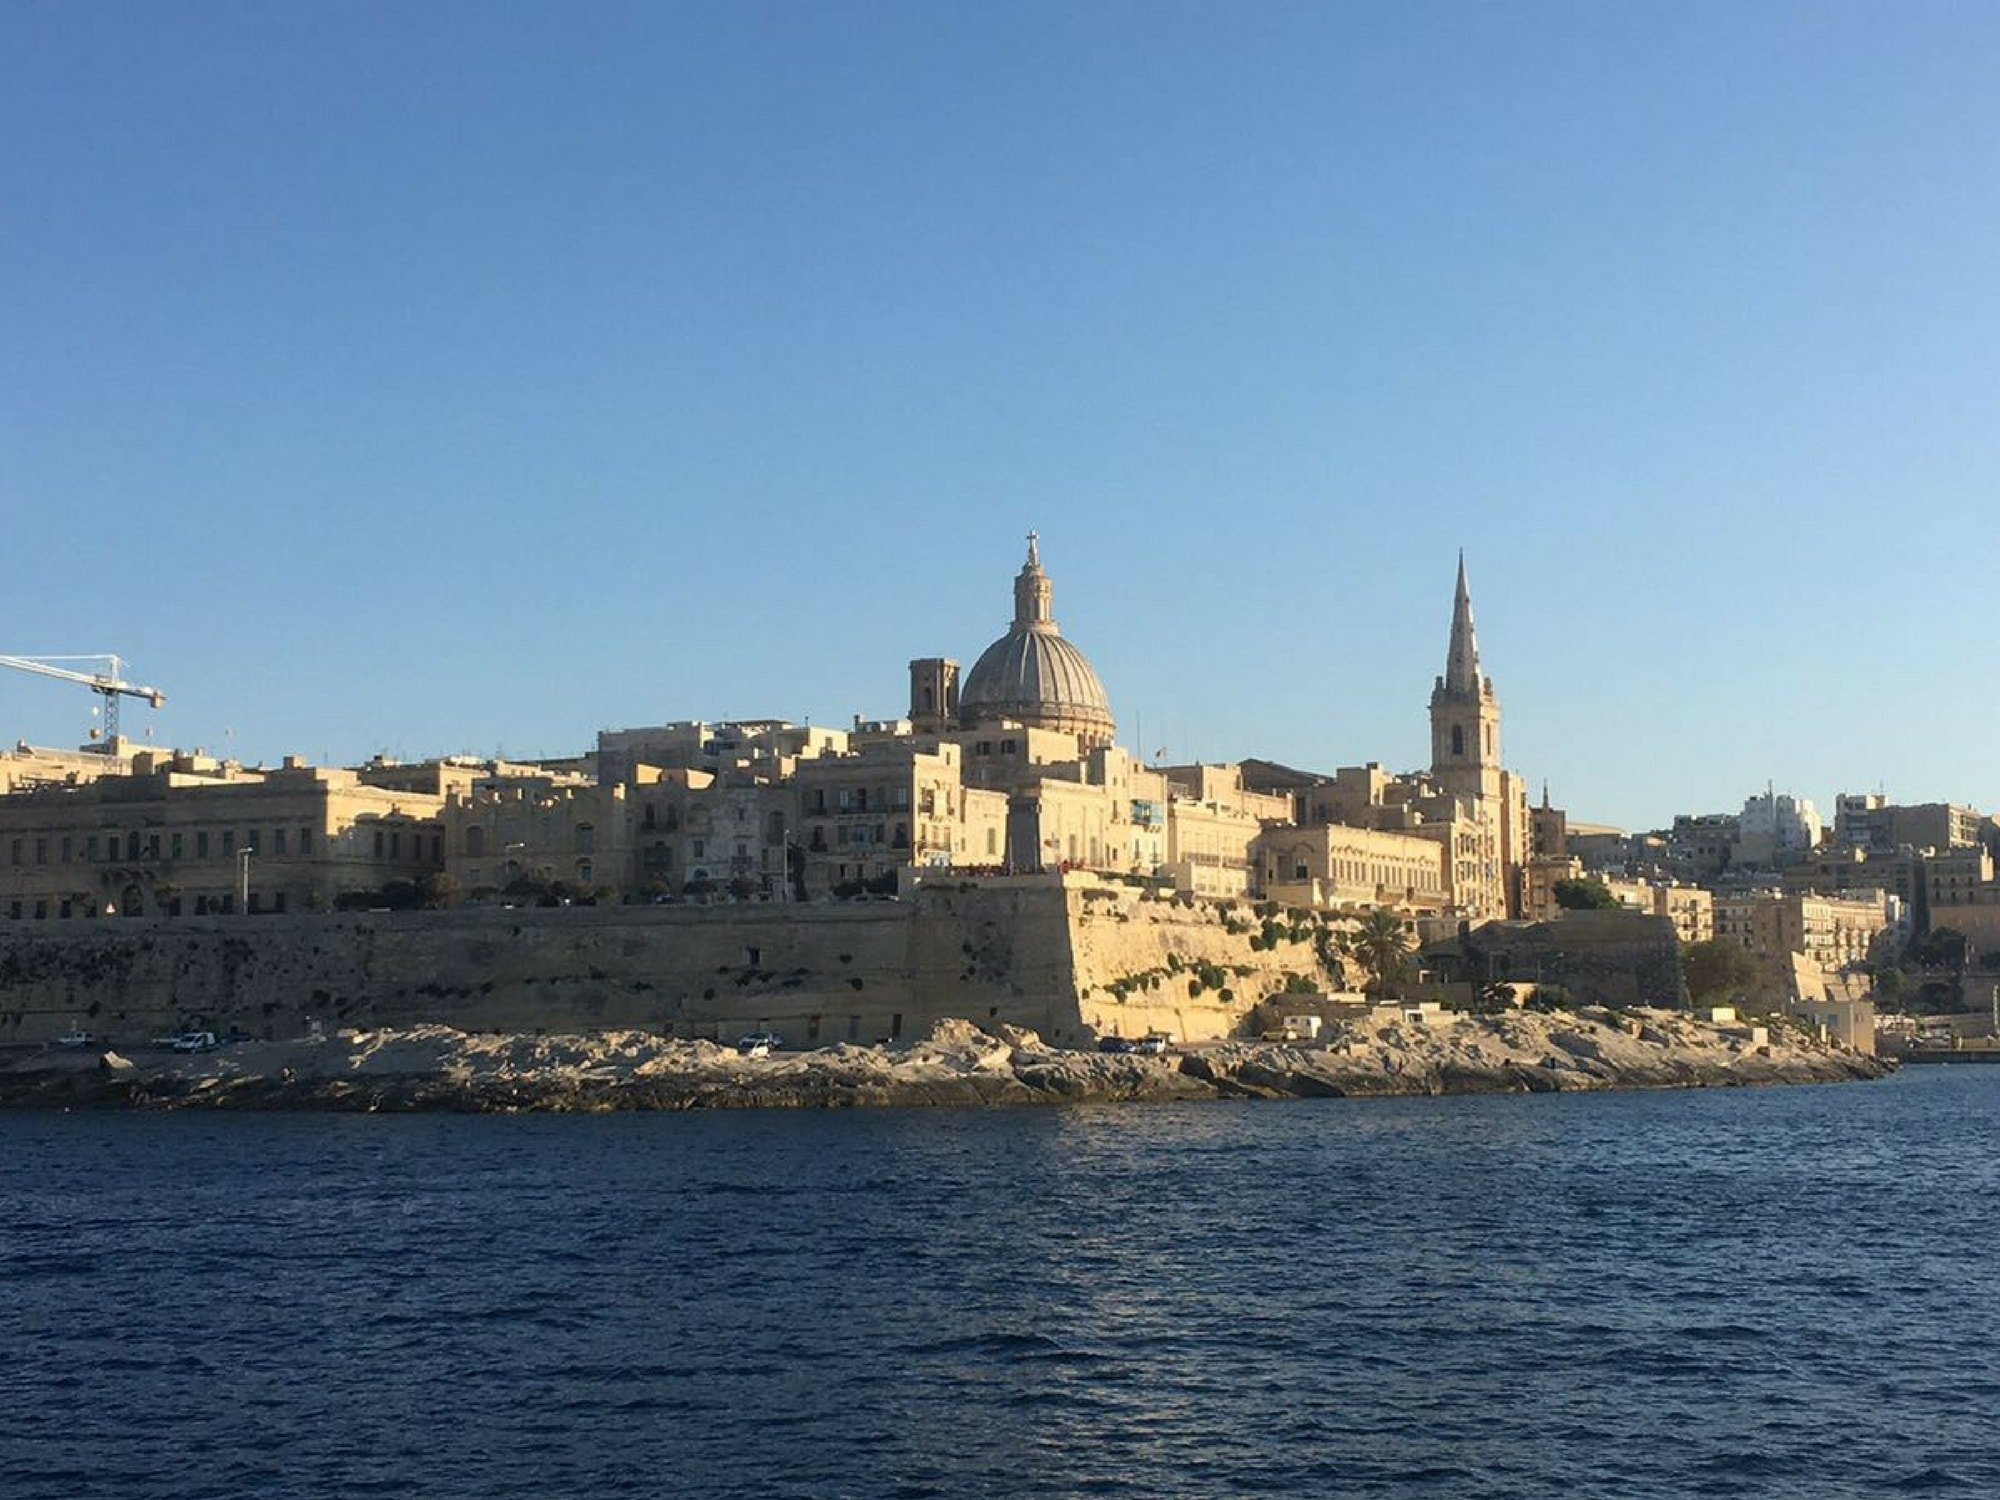 lagoon-sicily-charter-review-your-boat-holiday